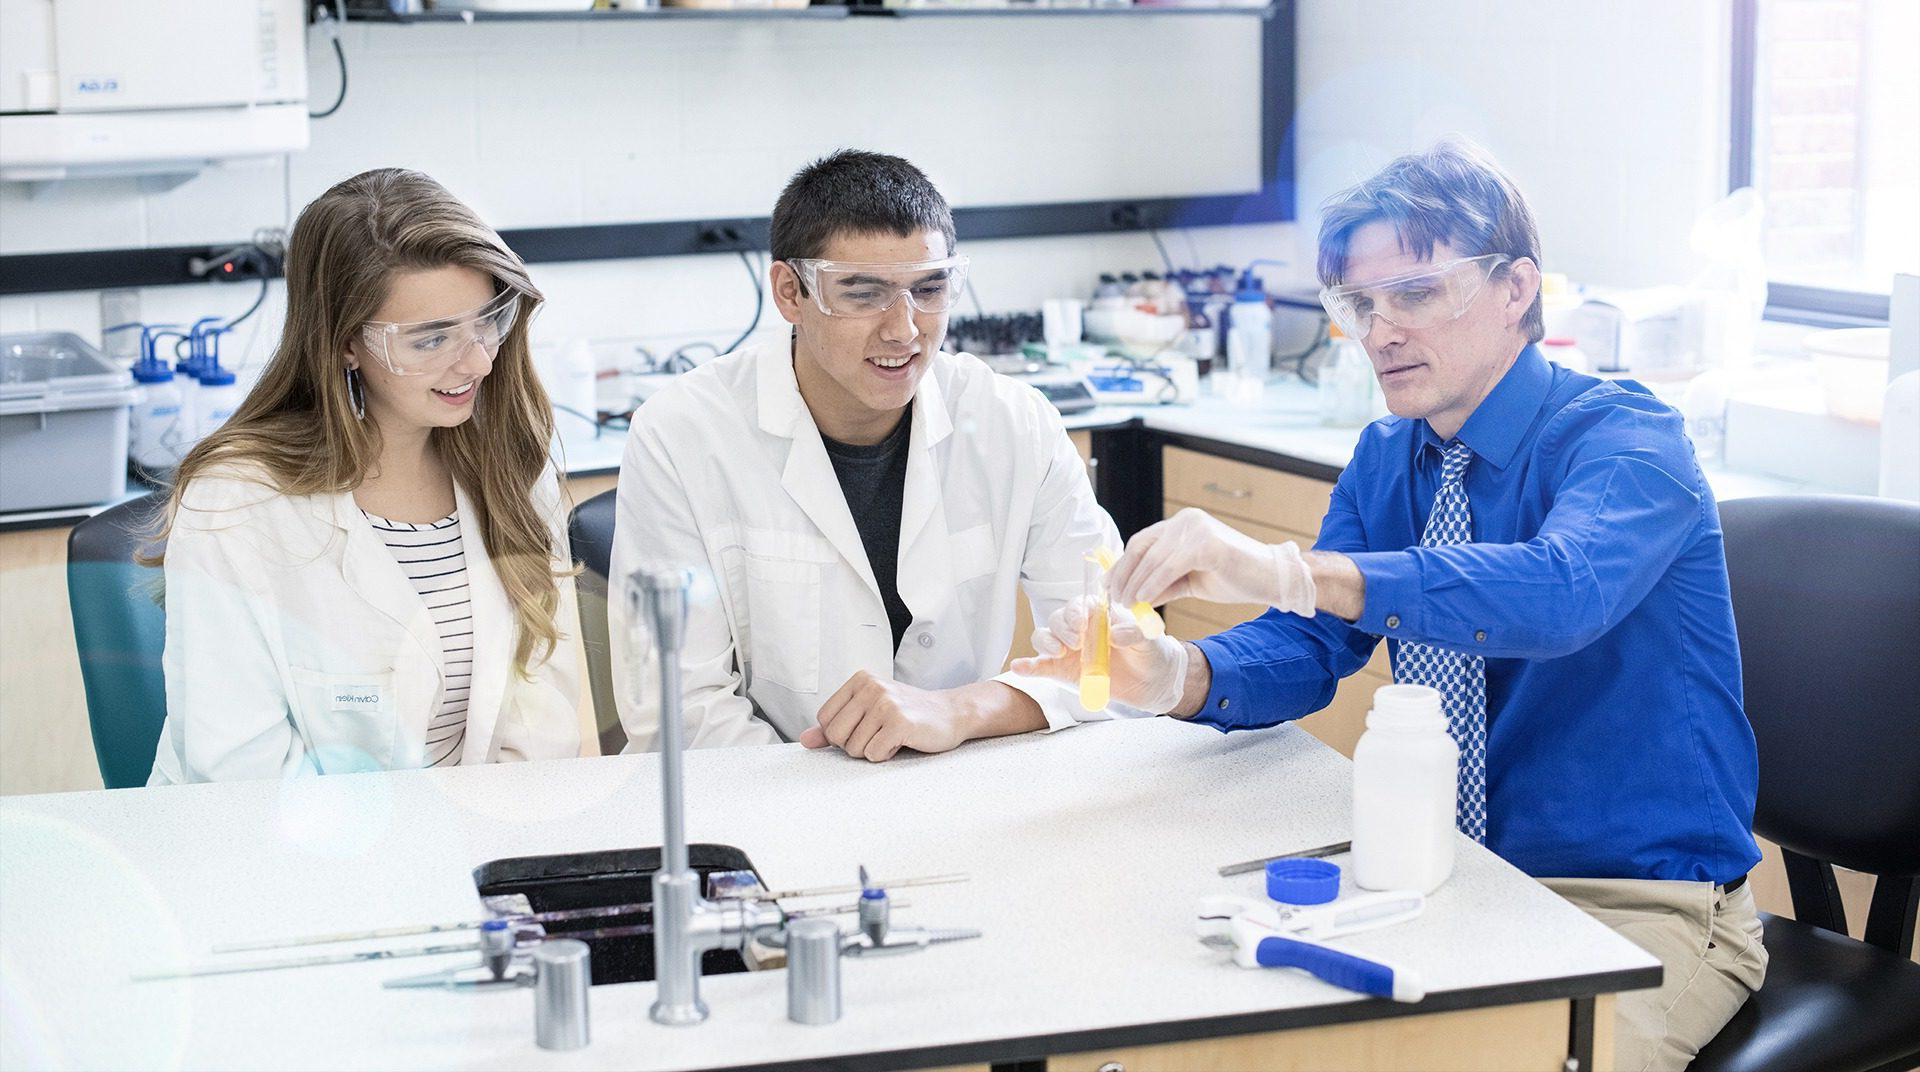 Professor mentoring science students in microbiology lab